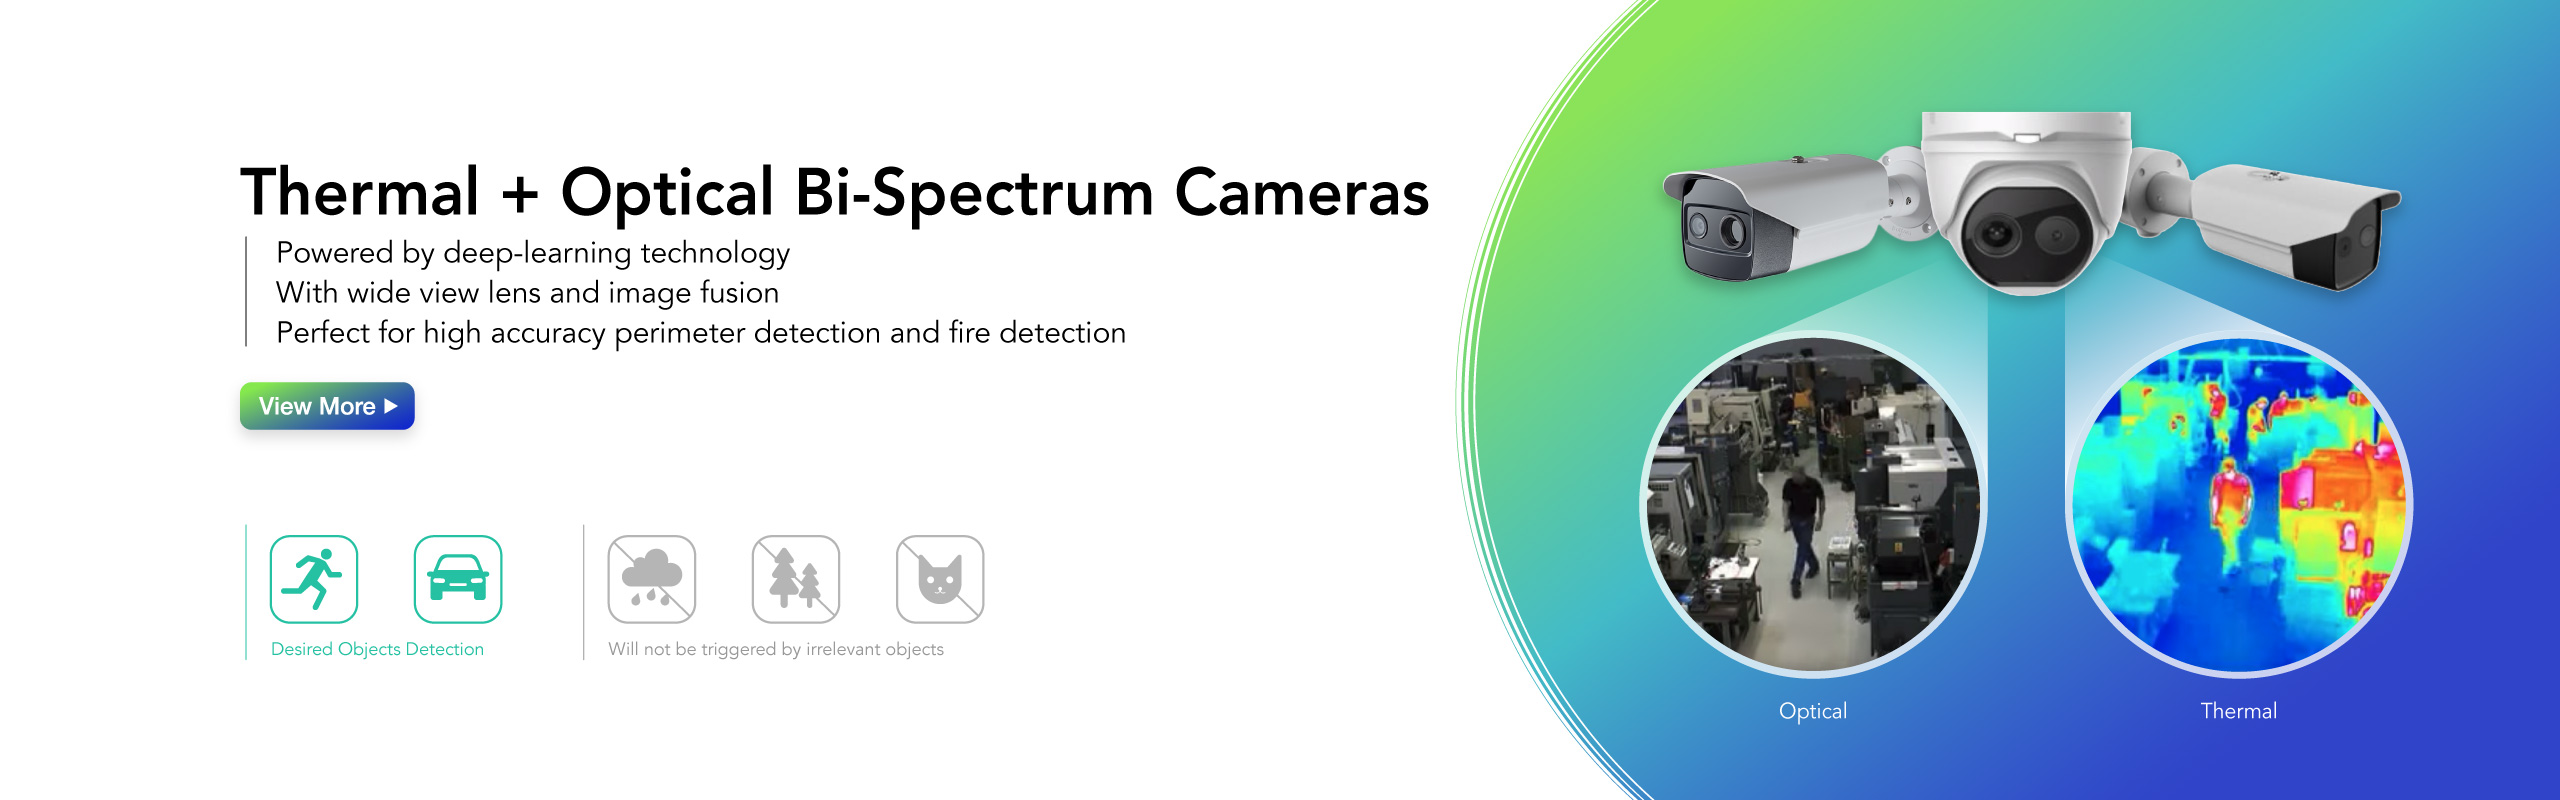 Deep Learning Bi-Spectrum Thermal Imaging Camera